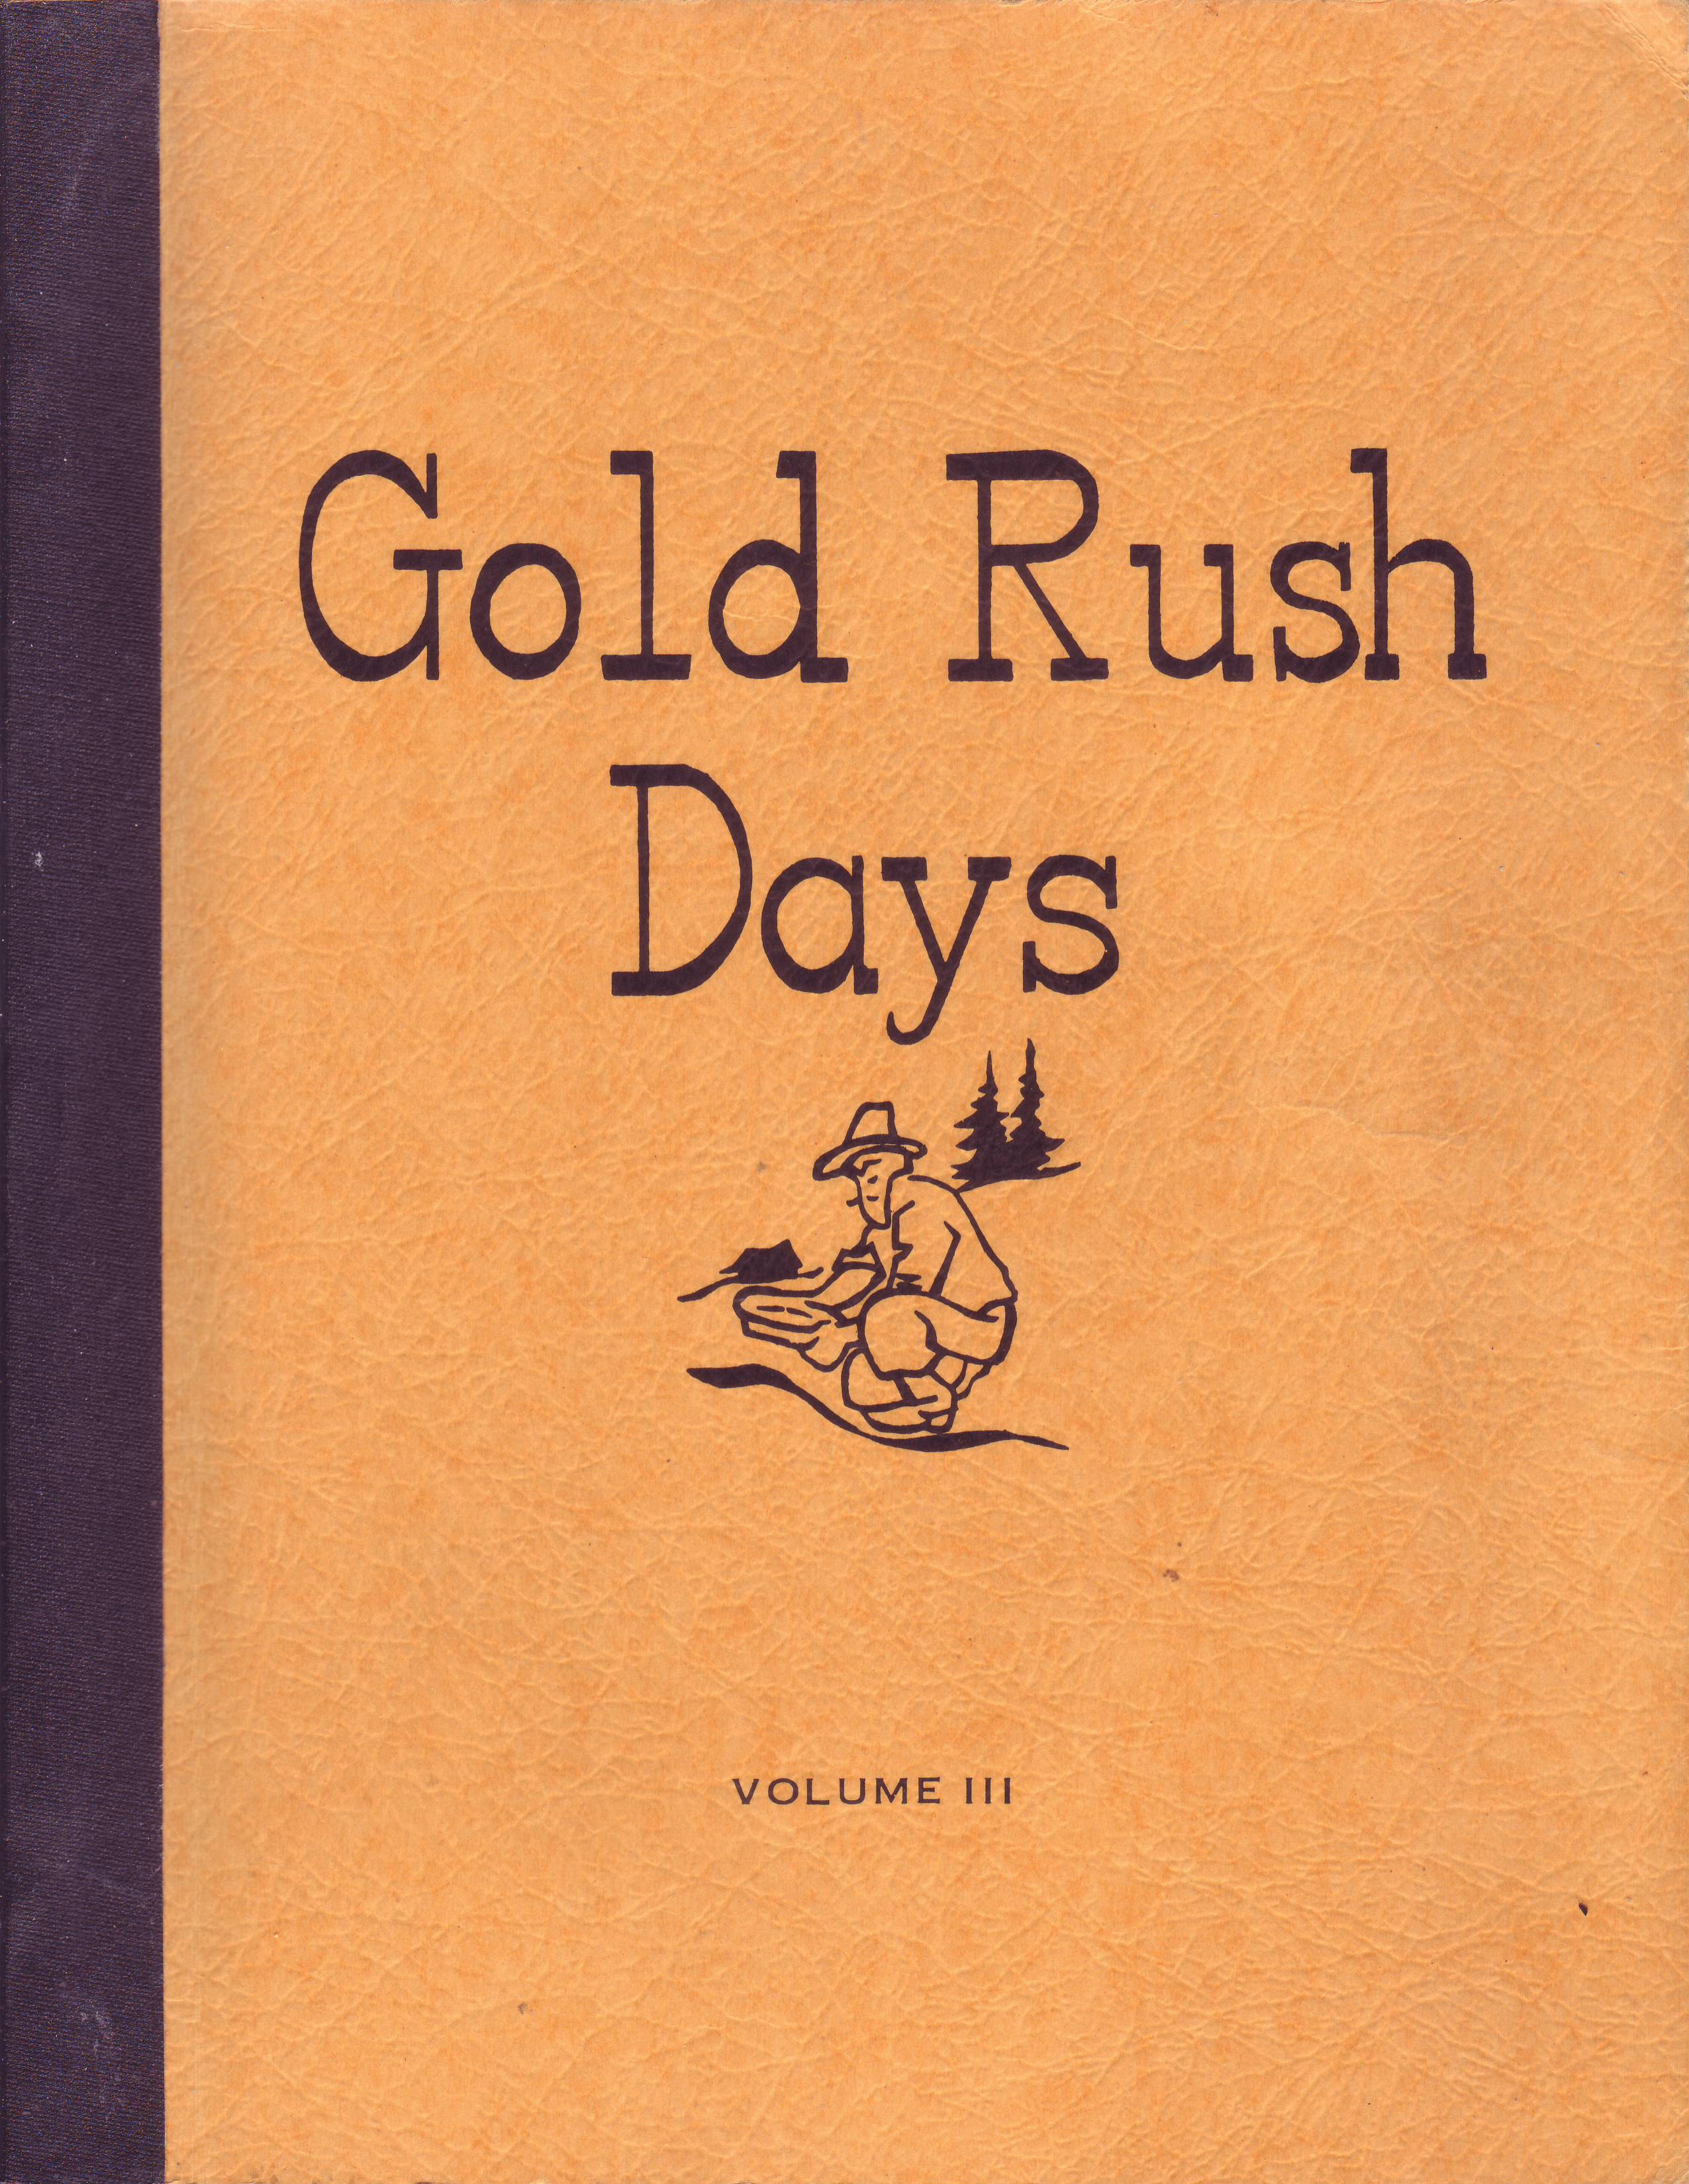 Gold Rush Days, Volume III